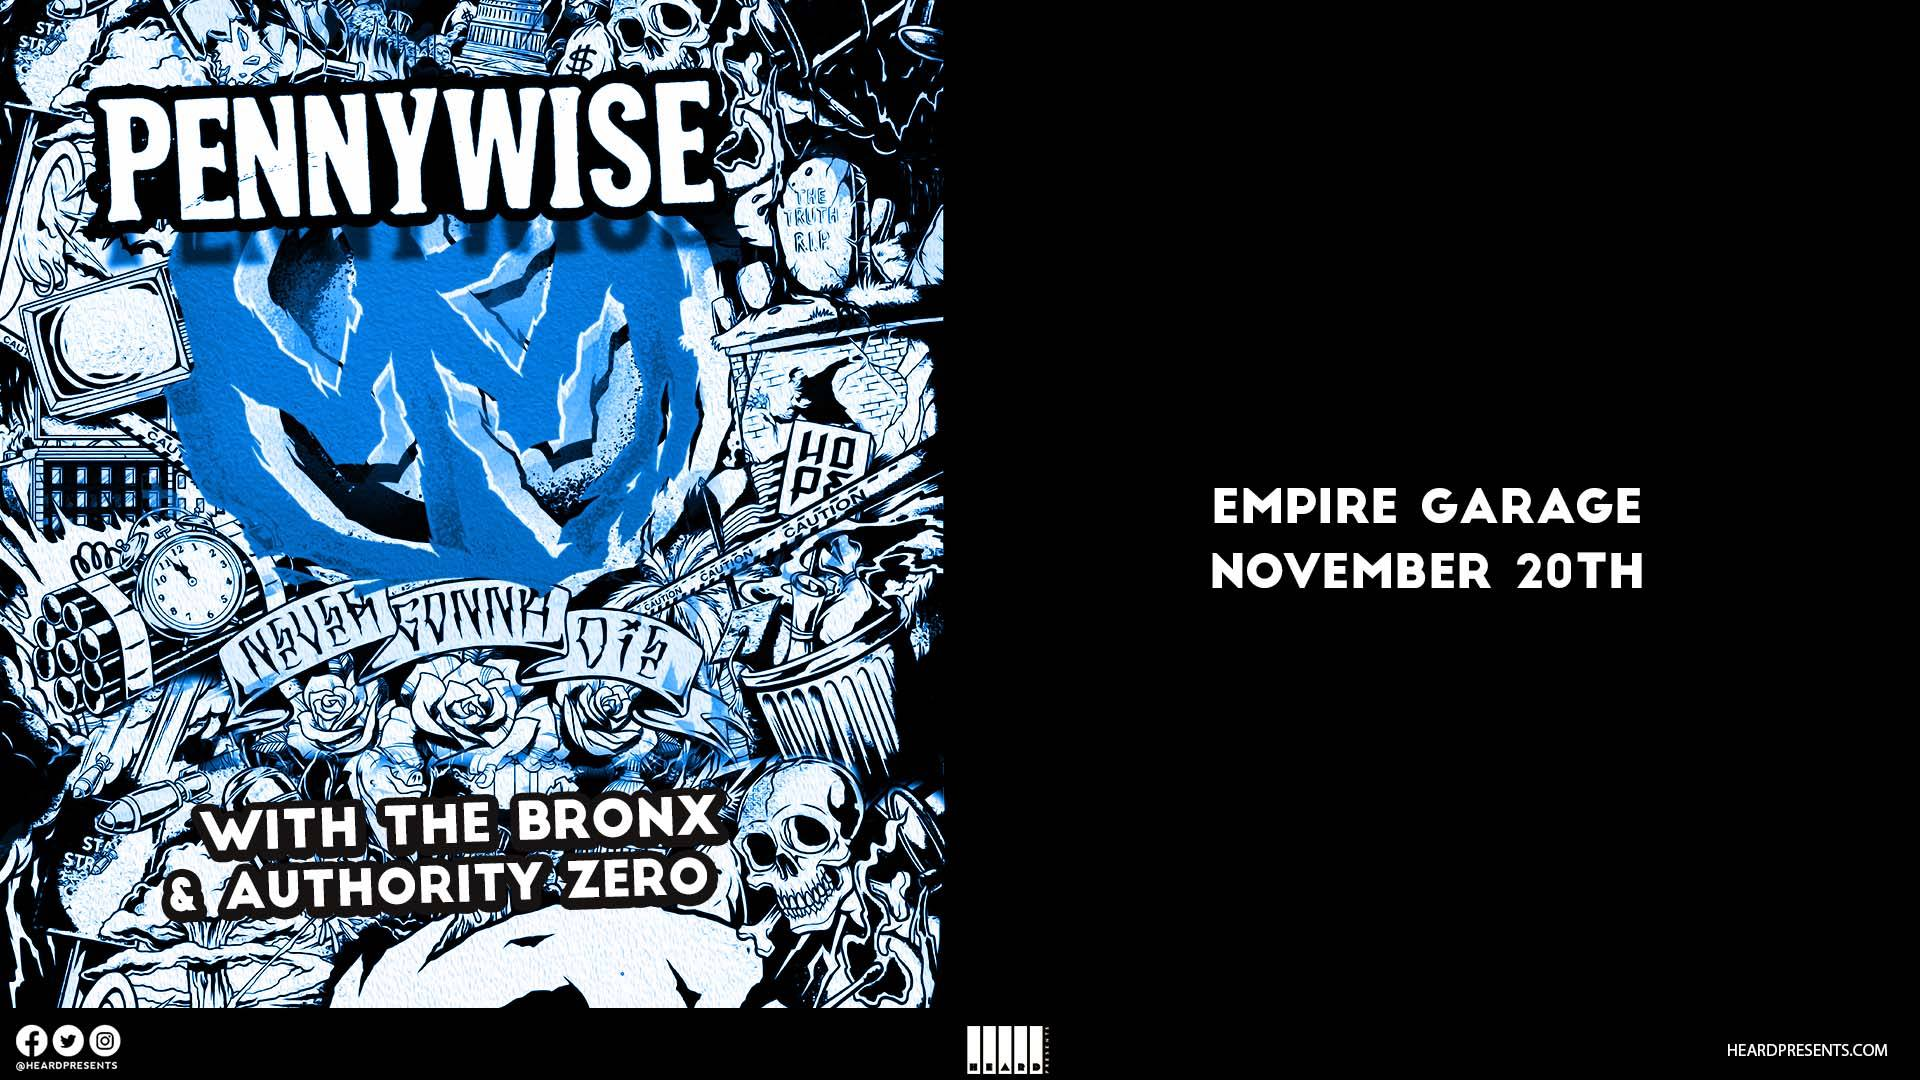 Pennywise at Empire Garage